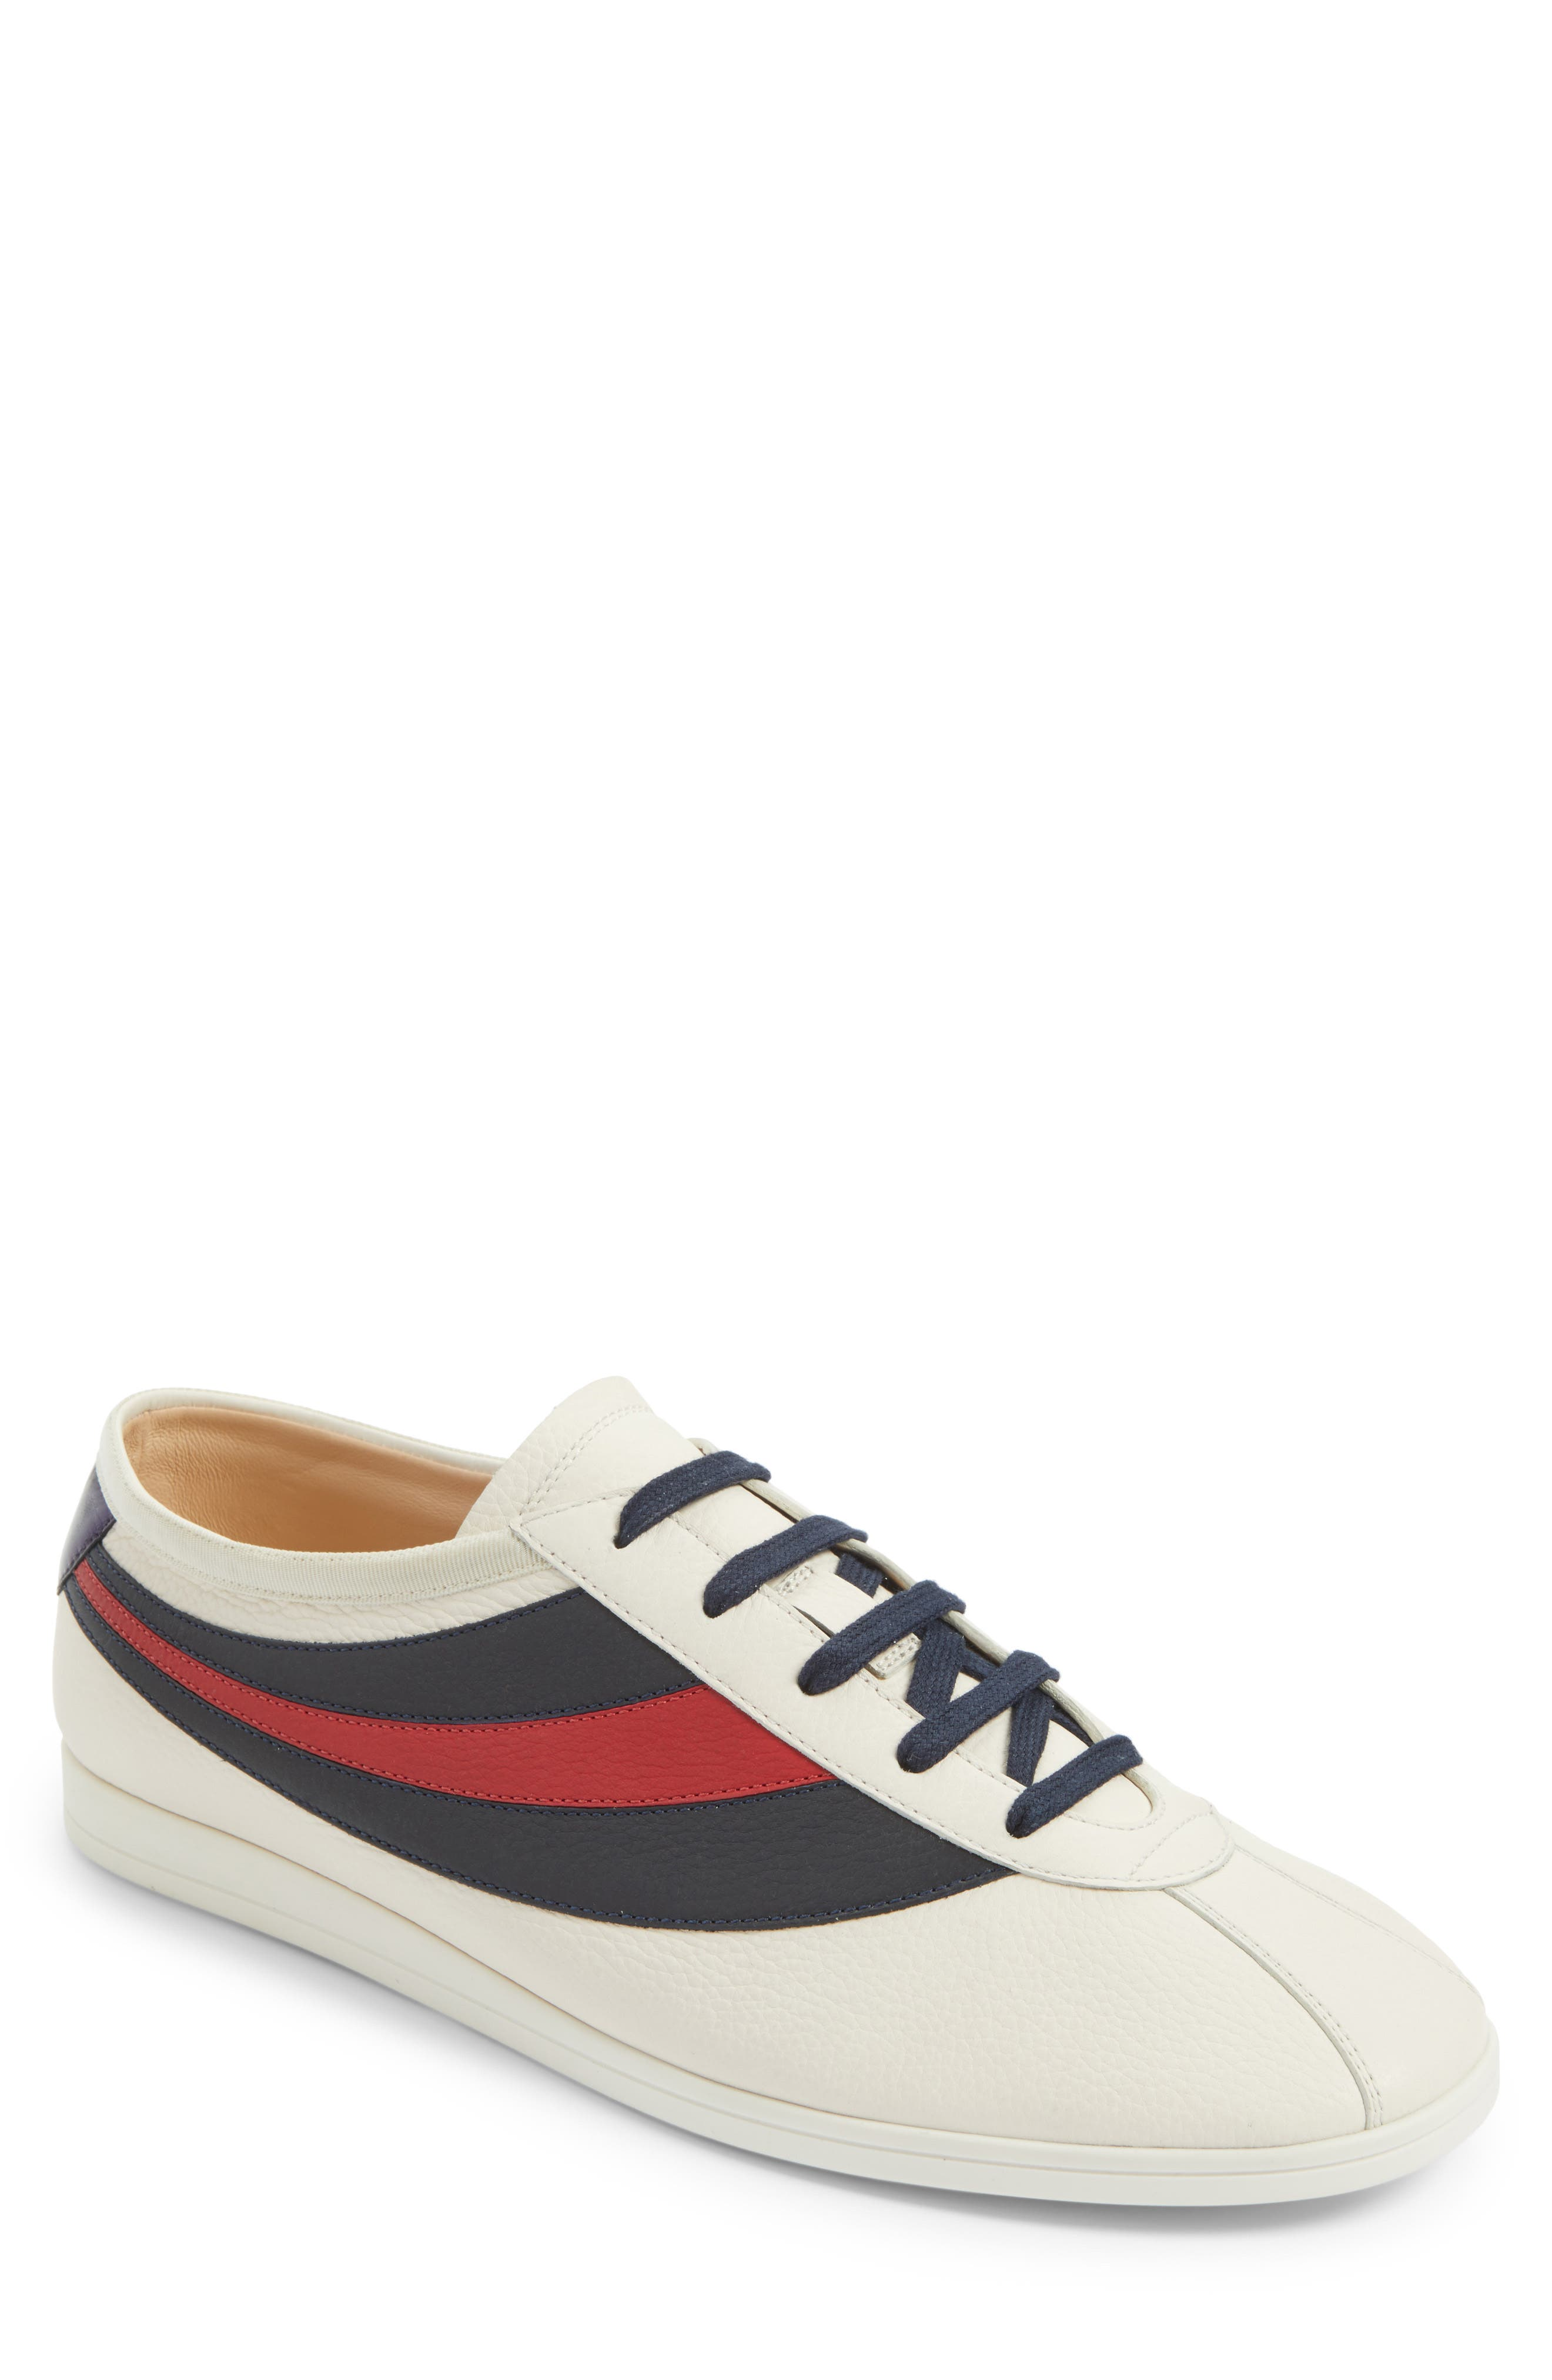 Gucci Competition Sneaker (Men)